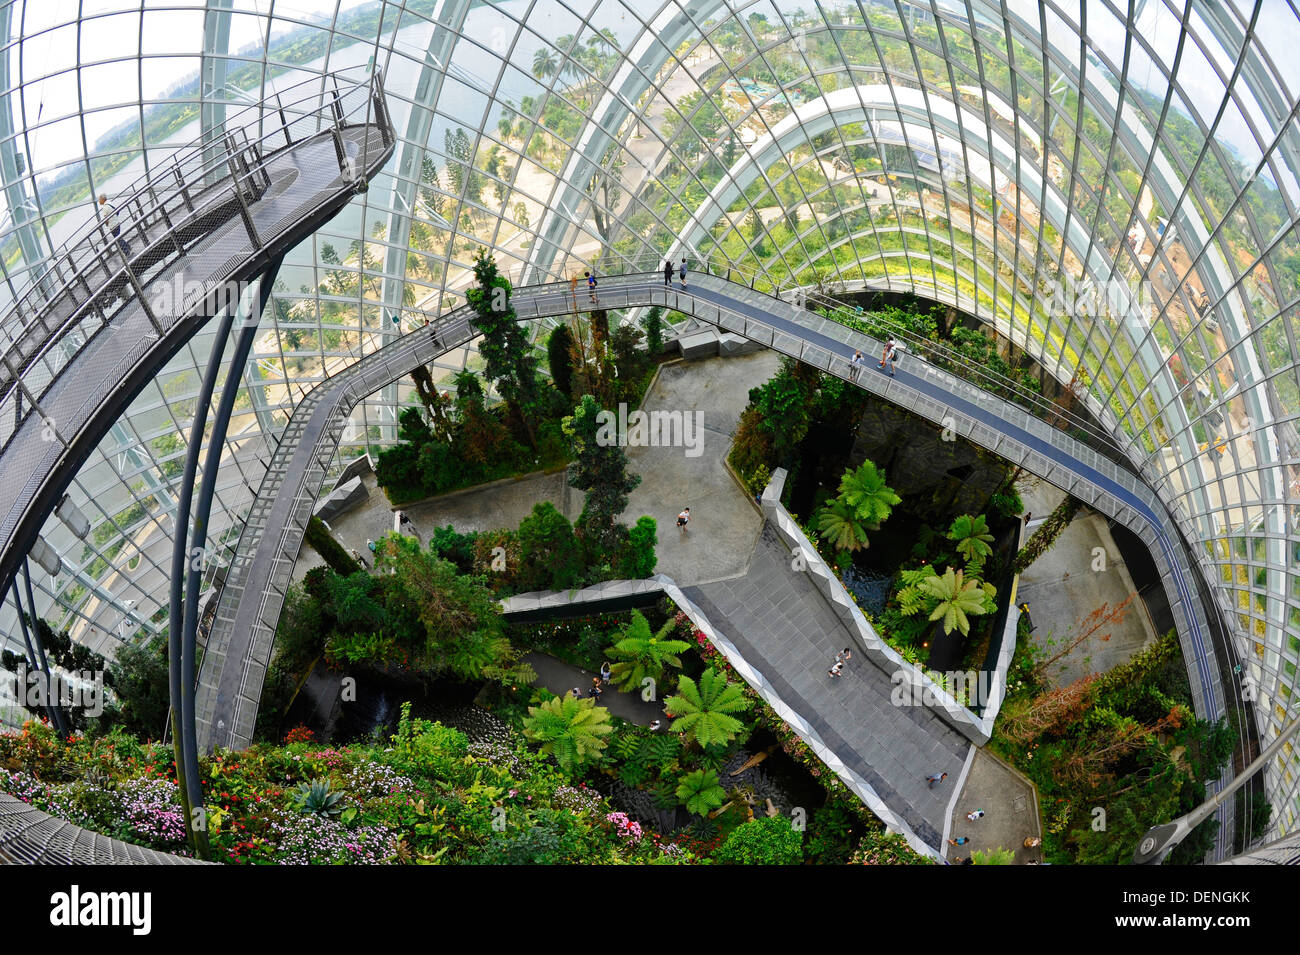 The Cloud Forest, a large indoor greenhouse set in the grounds of ...